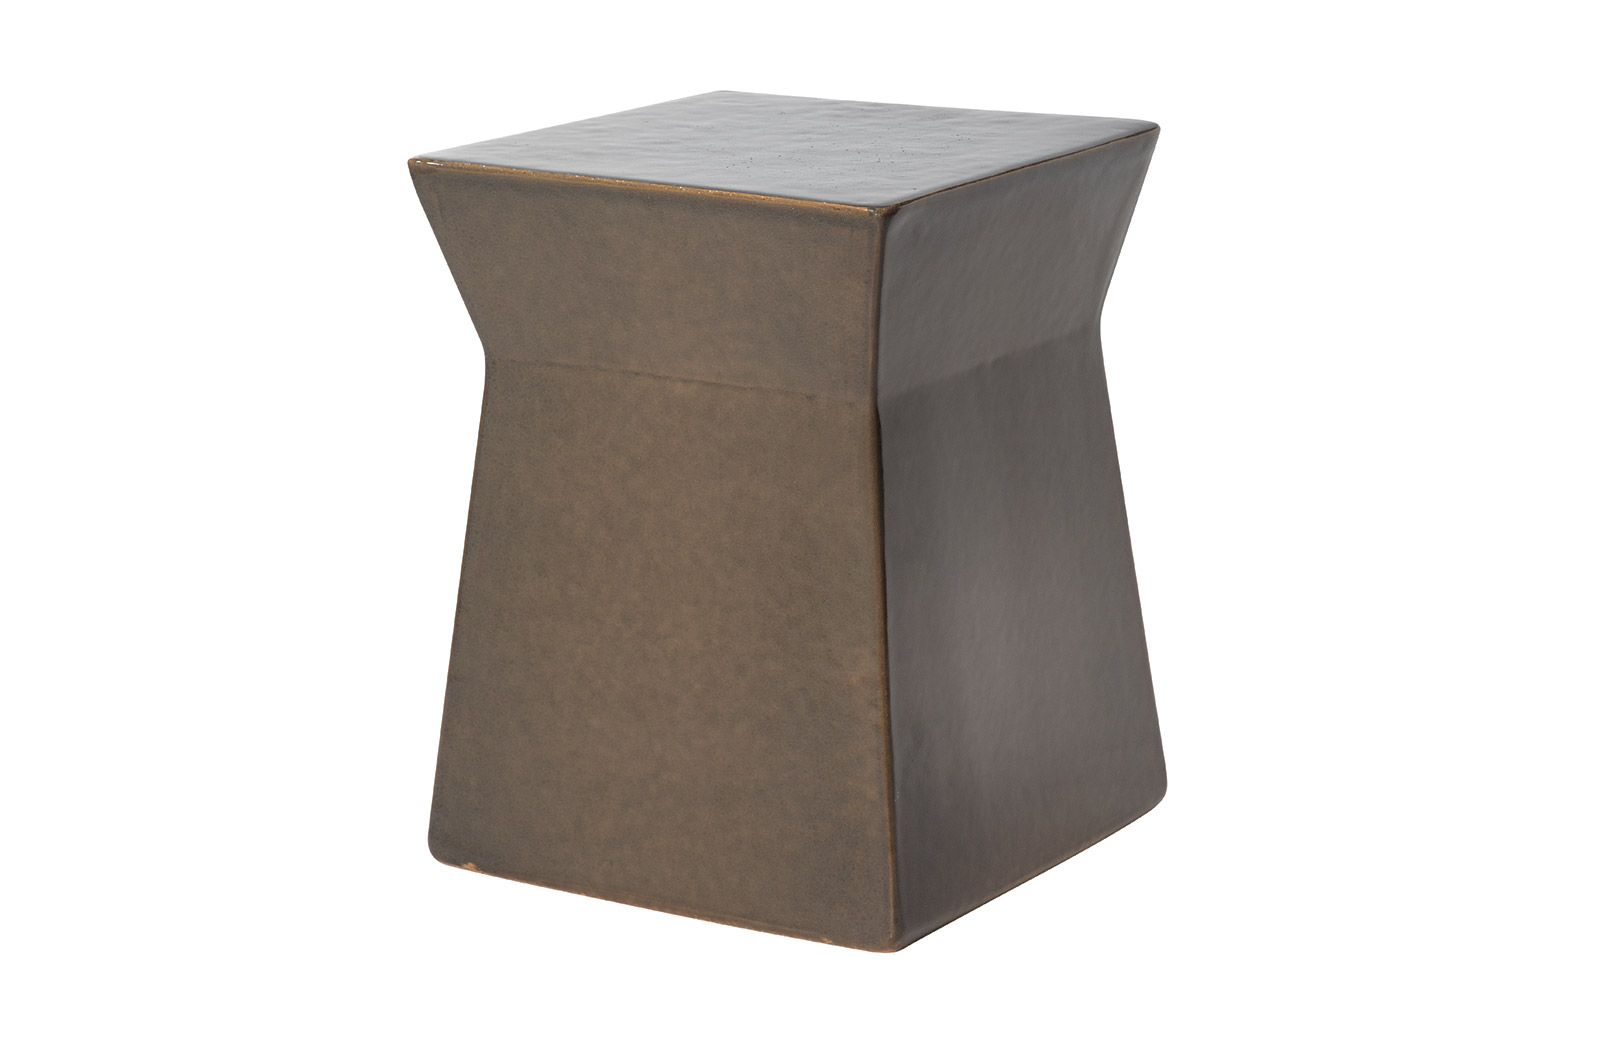 ceramic ashlar stool accent table cer web furniture collection beautiful nesting tables target bedroom vanity marble coffee swimming pool umbrella paint large console white side